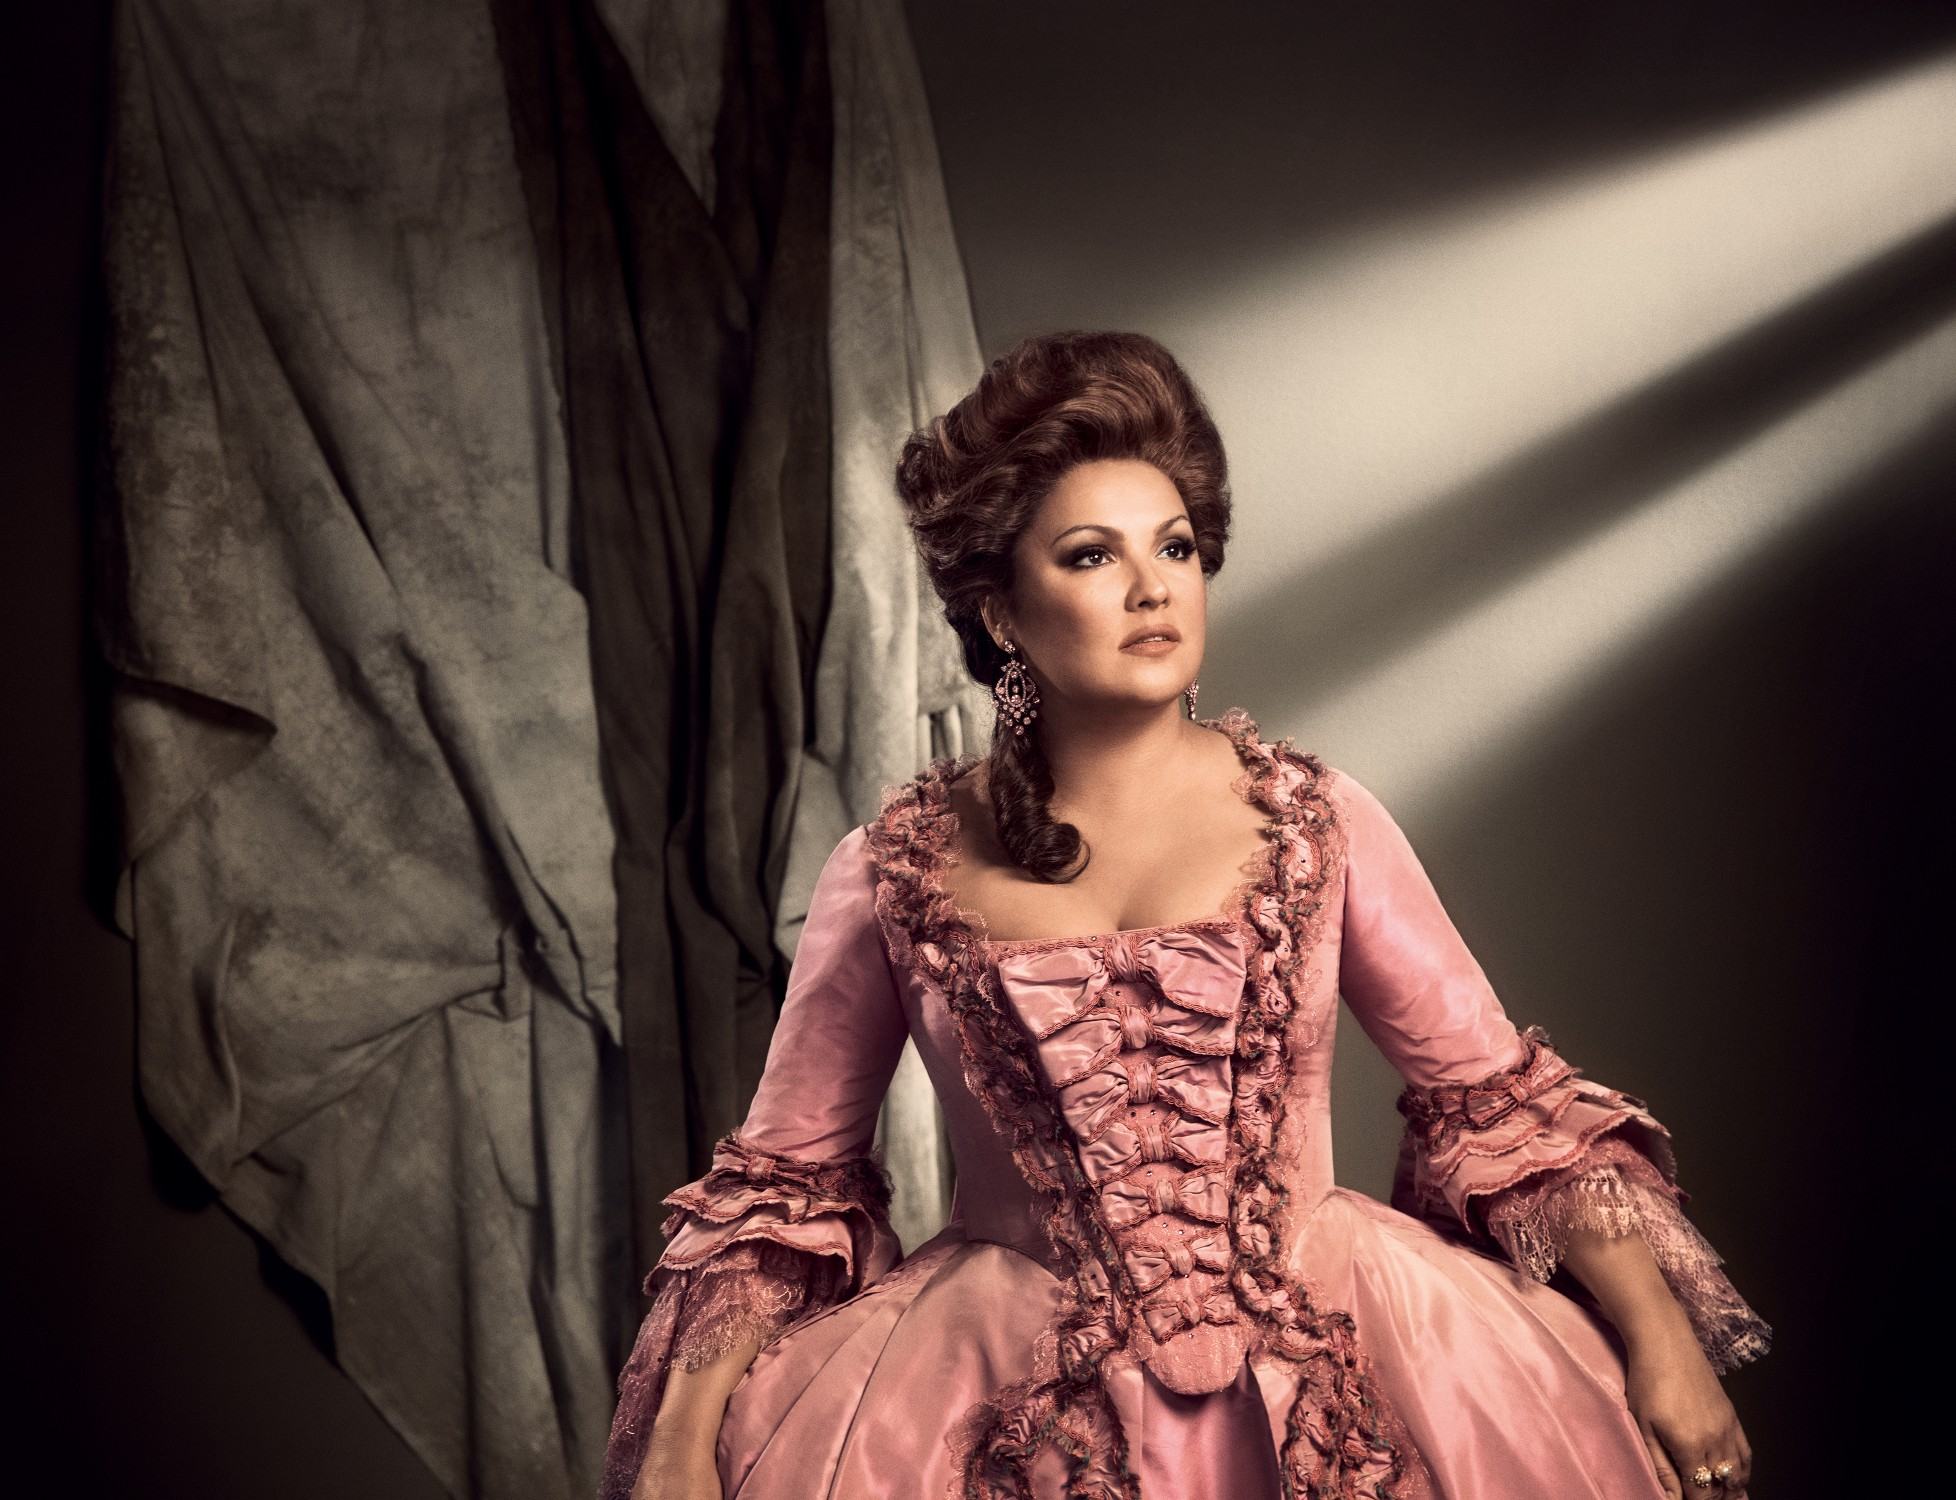 THE MET LIVE IN HD Adriana Lecouveur